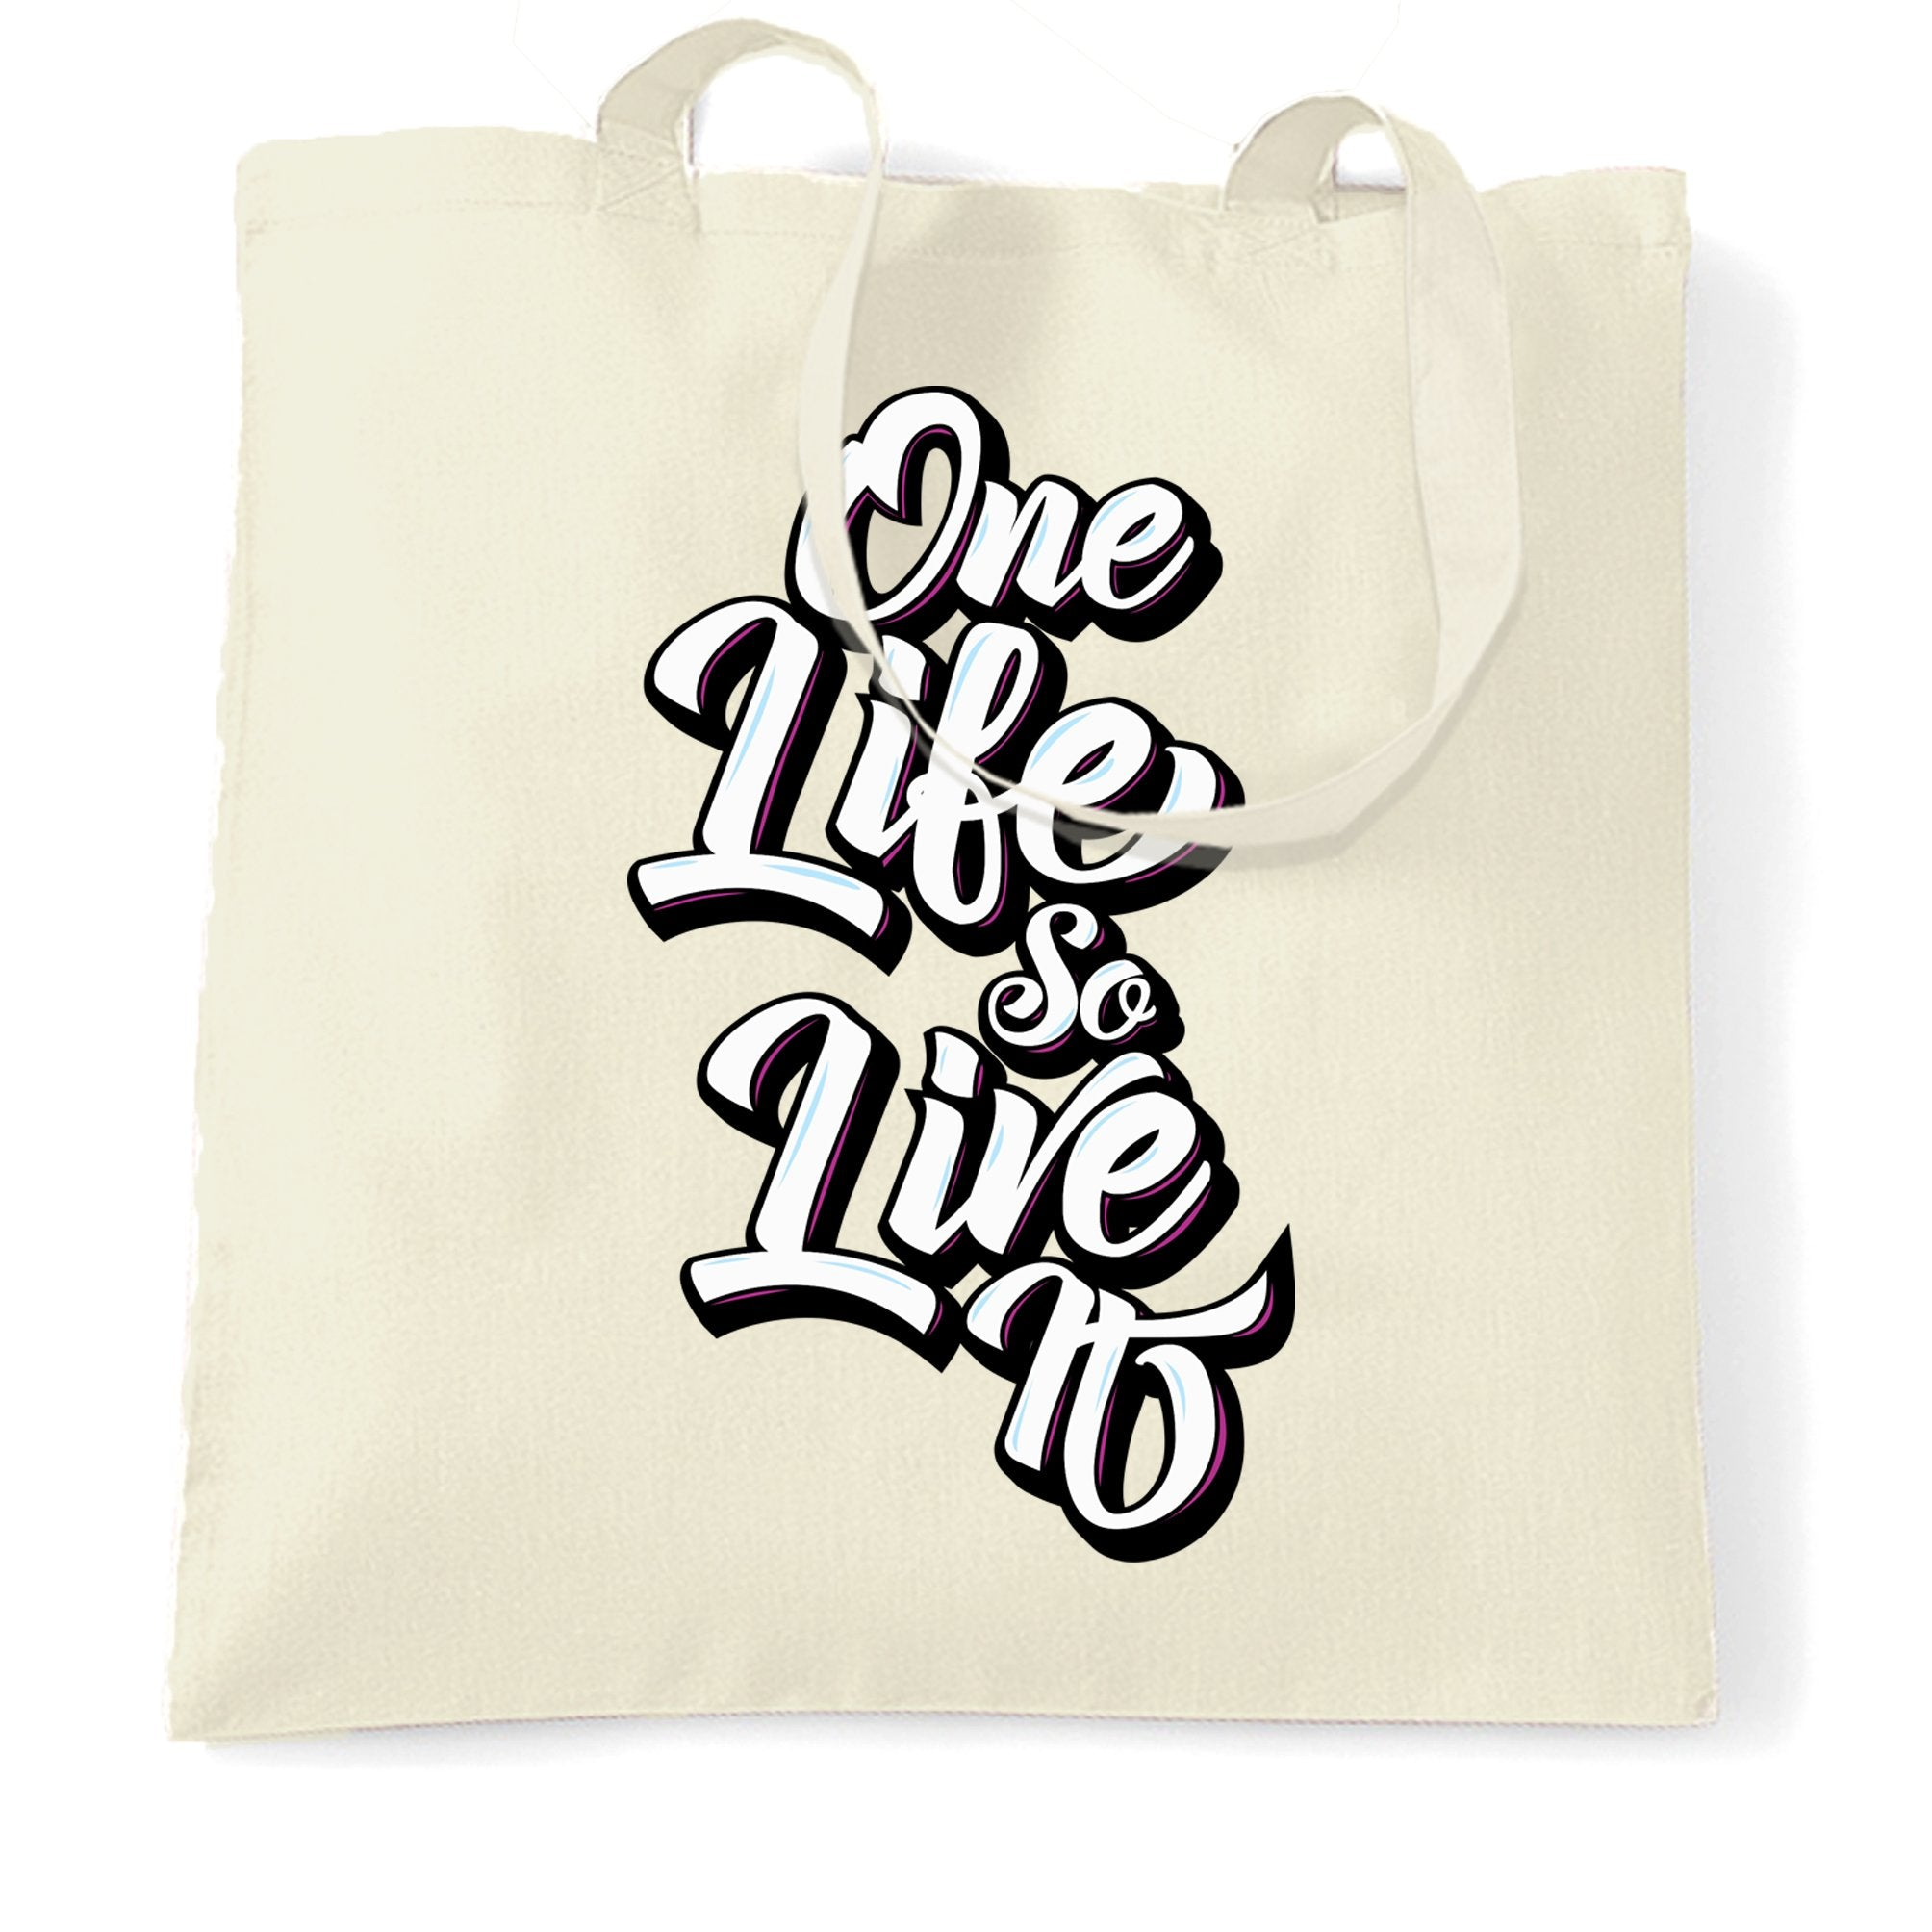 Inspirational Tote Bag You Have One Life, So Live It